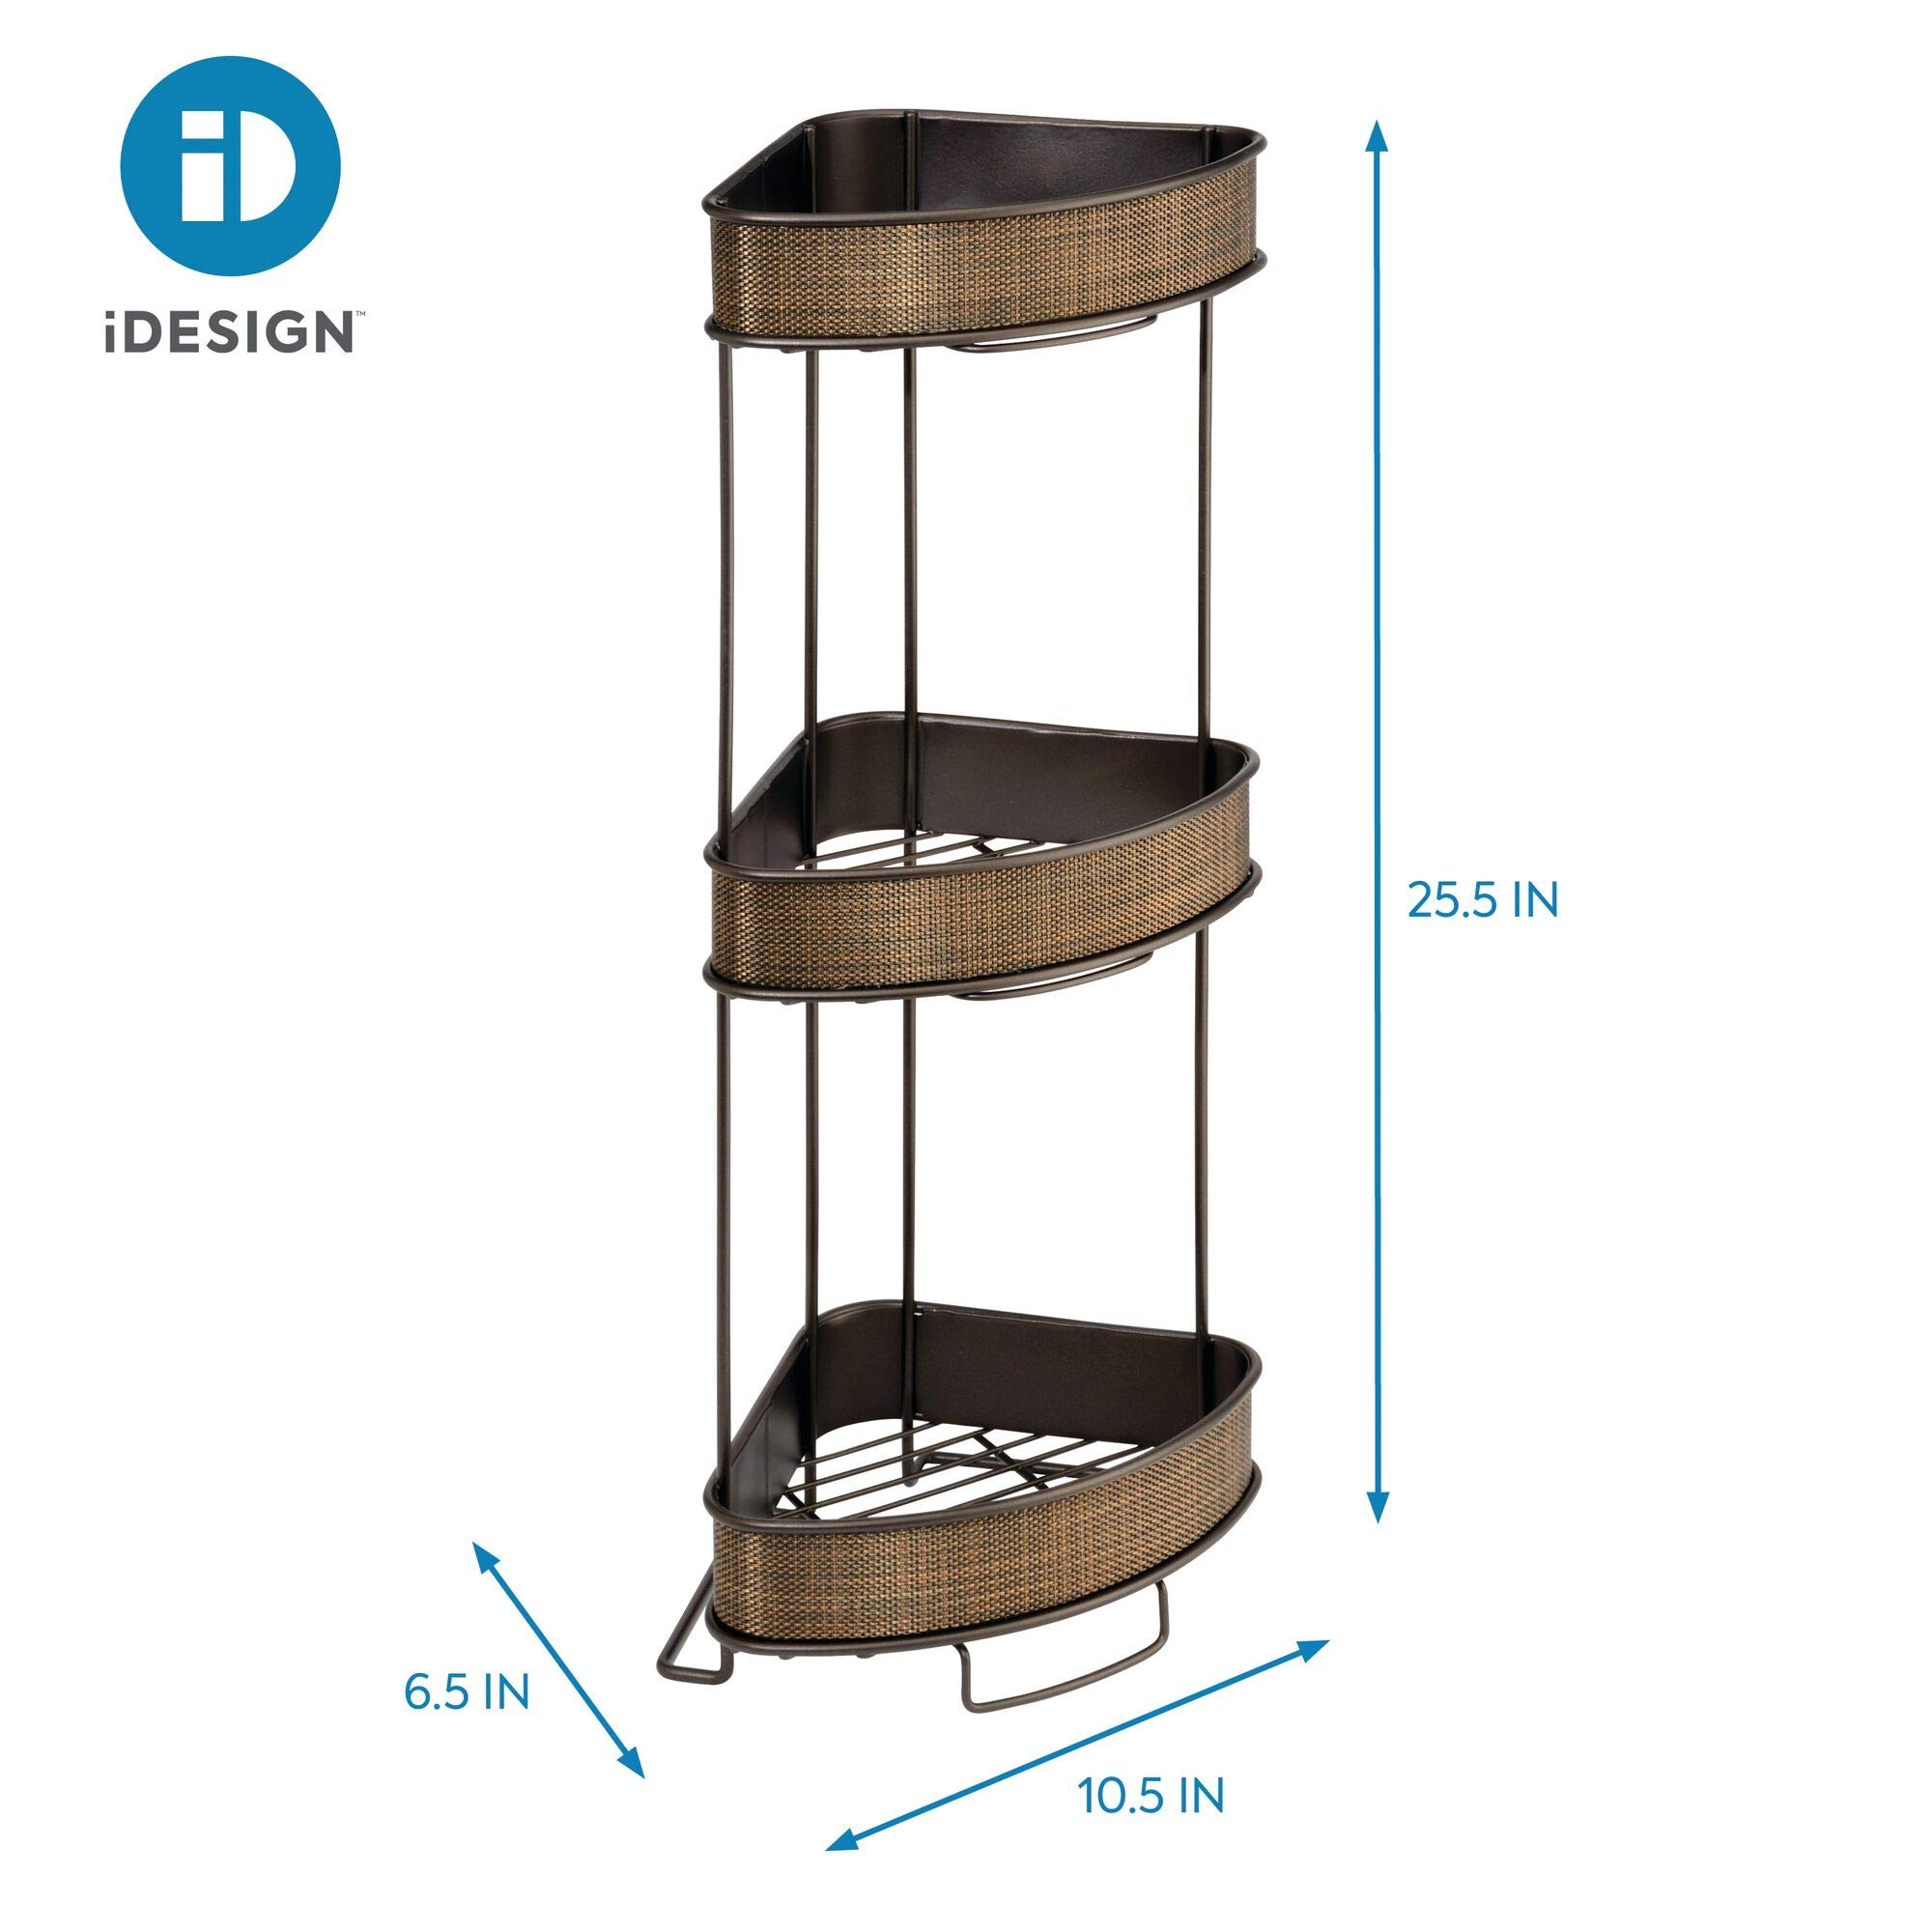 iDesign Twillo Metal Wire Corner Standing Shower Caddy 3-Tier Bath Shelf Baskets for Towels, Soap, Shampoo, Lotion, Accessories, by iDesign (Image #4)